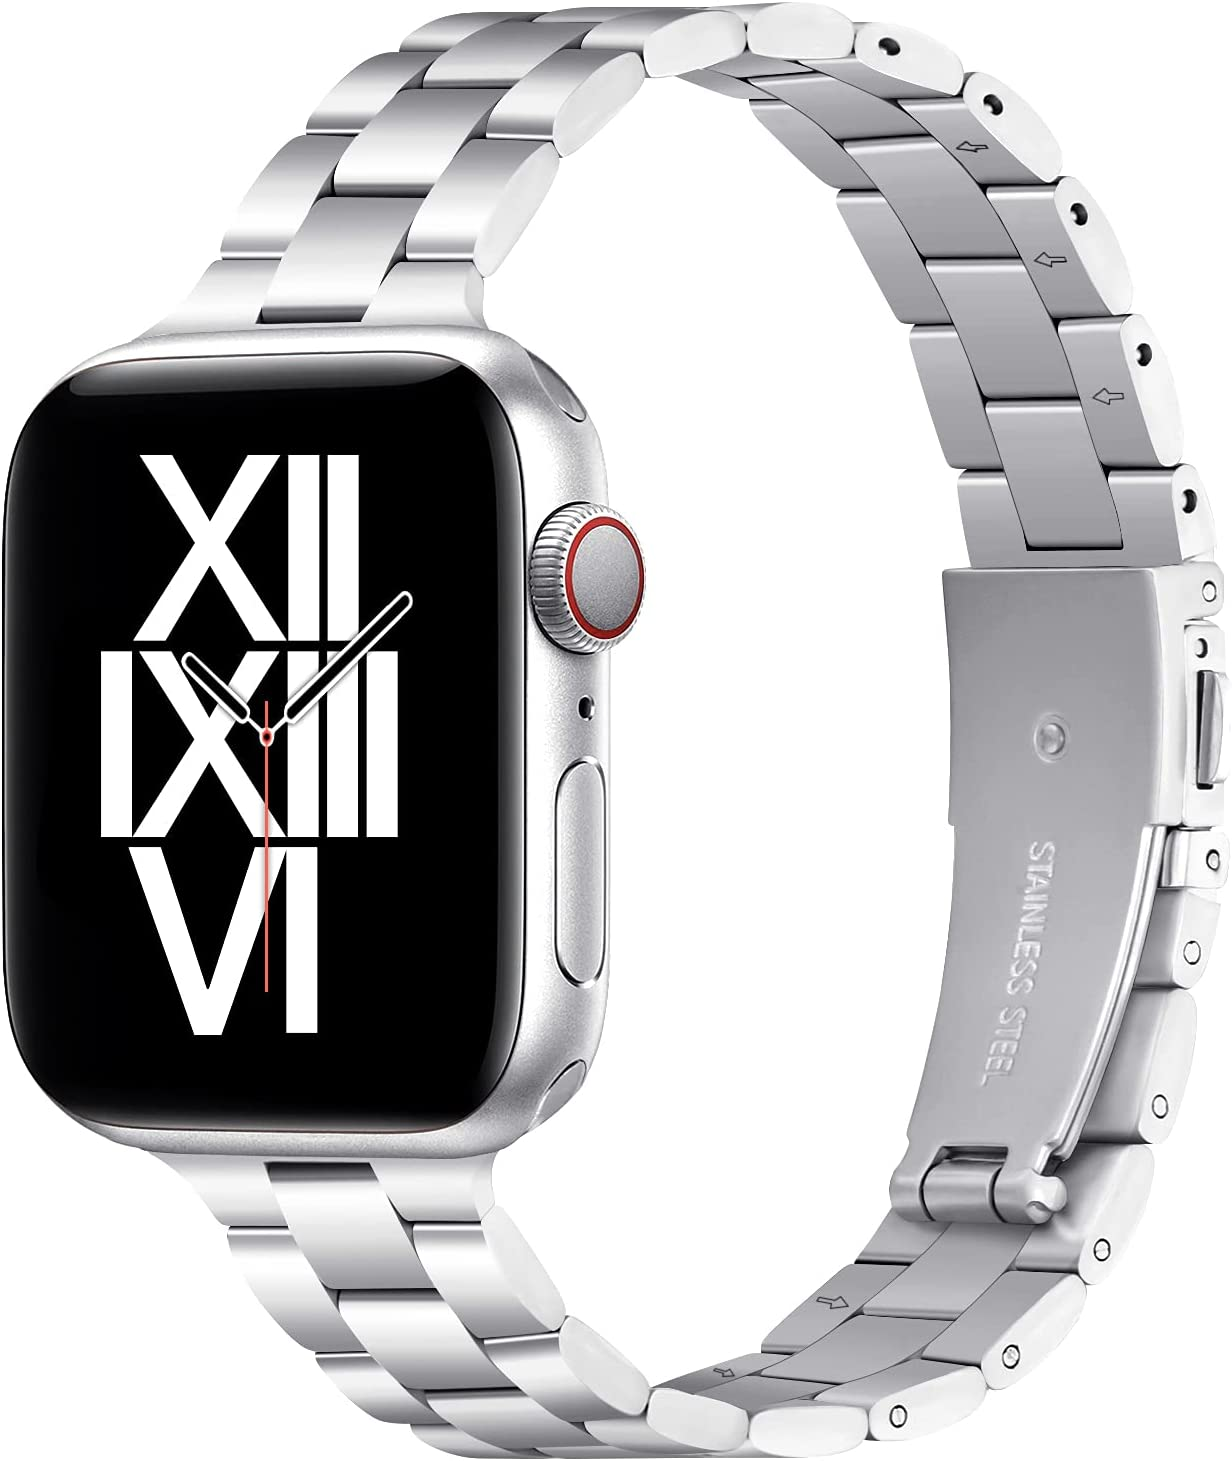 Thin Metal Band Compatible with Apple Watch 38mm 40mm Slim Stainless Steel Adjustable Wristband Strap for iWatch SE Series 6 5 4 3 2 1 for Women Men,Silver